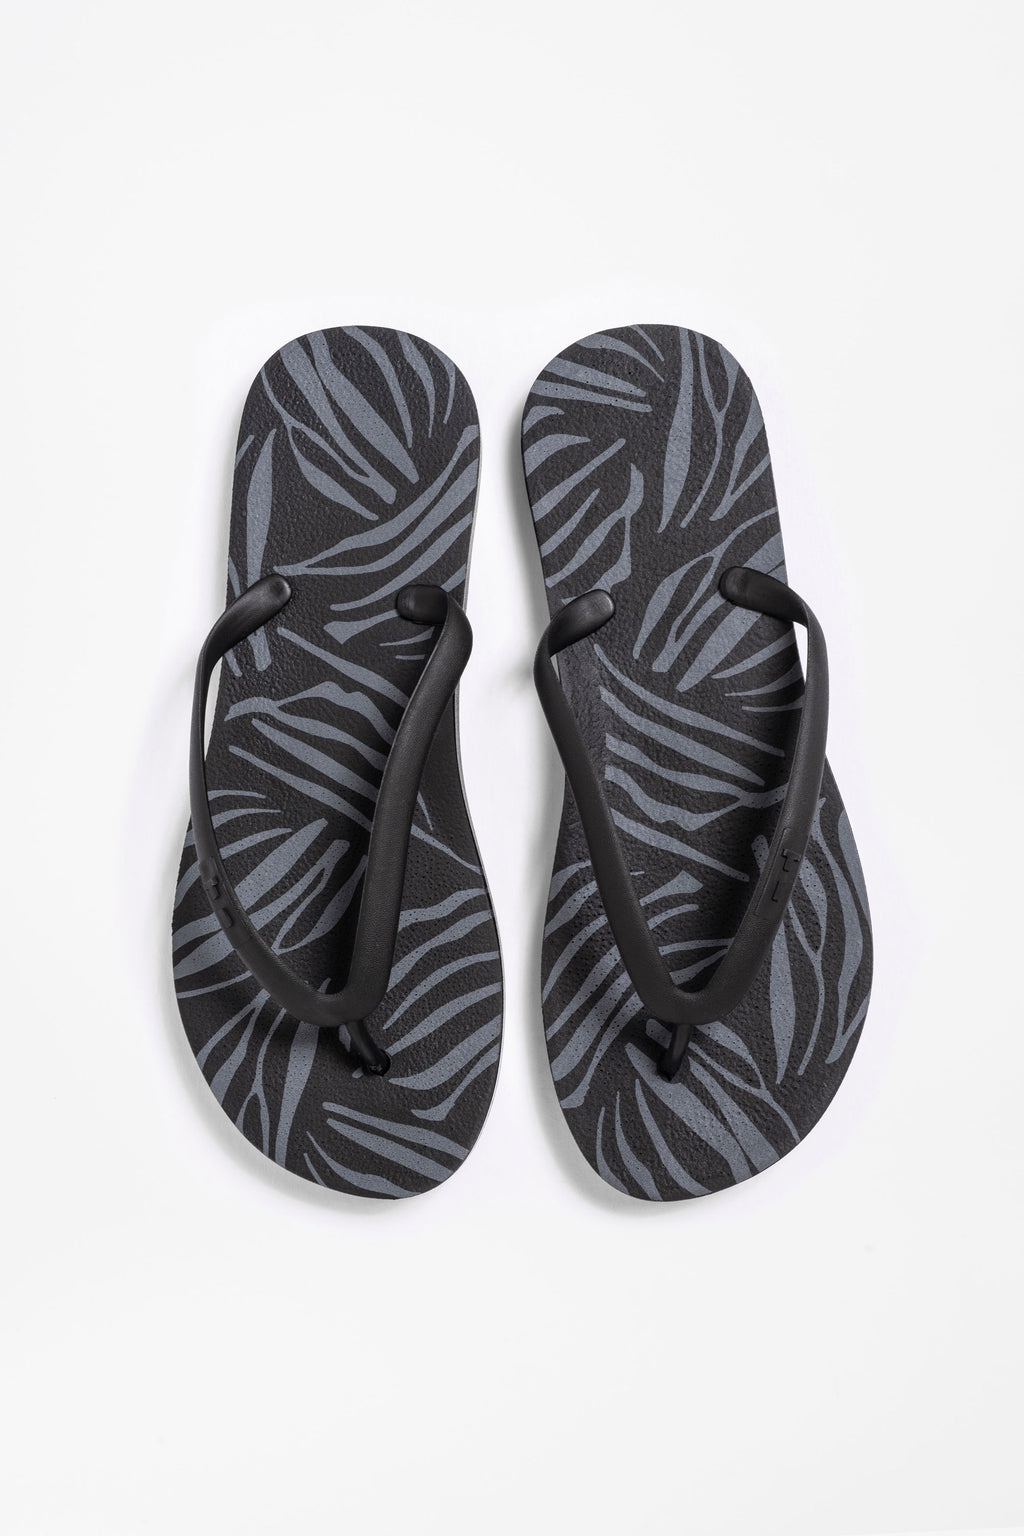 Black flip flops for women with zebra print pattern